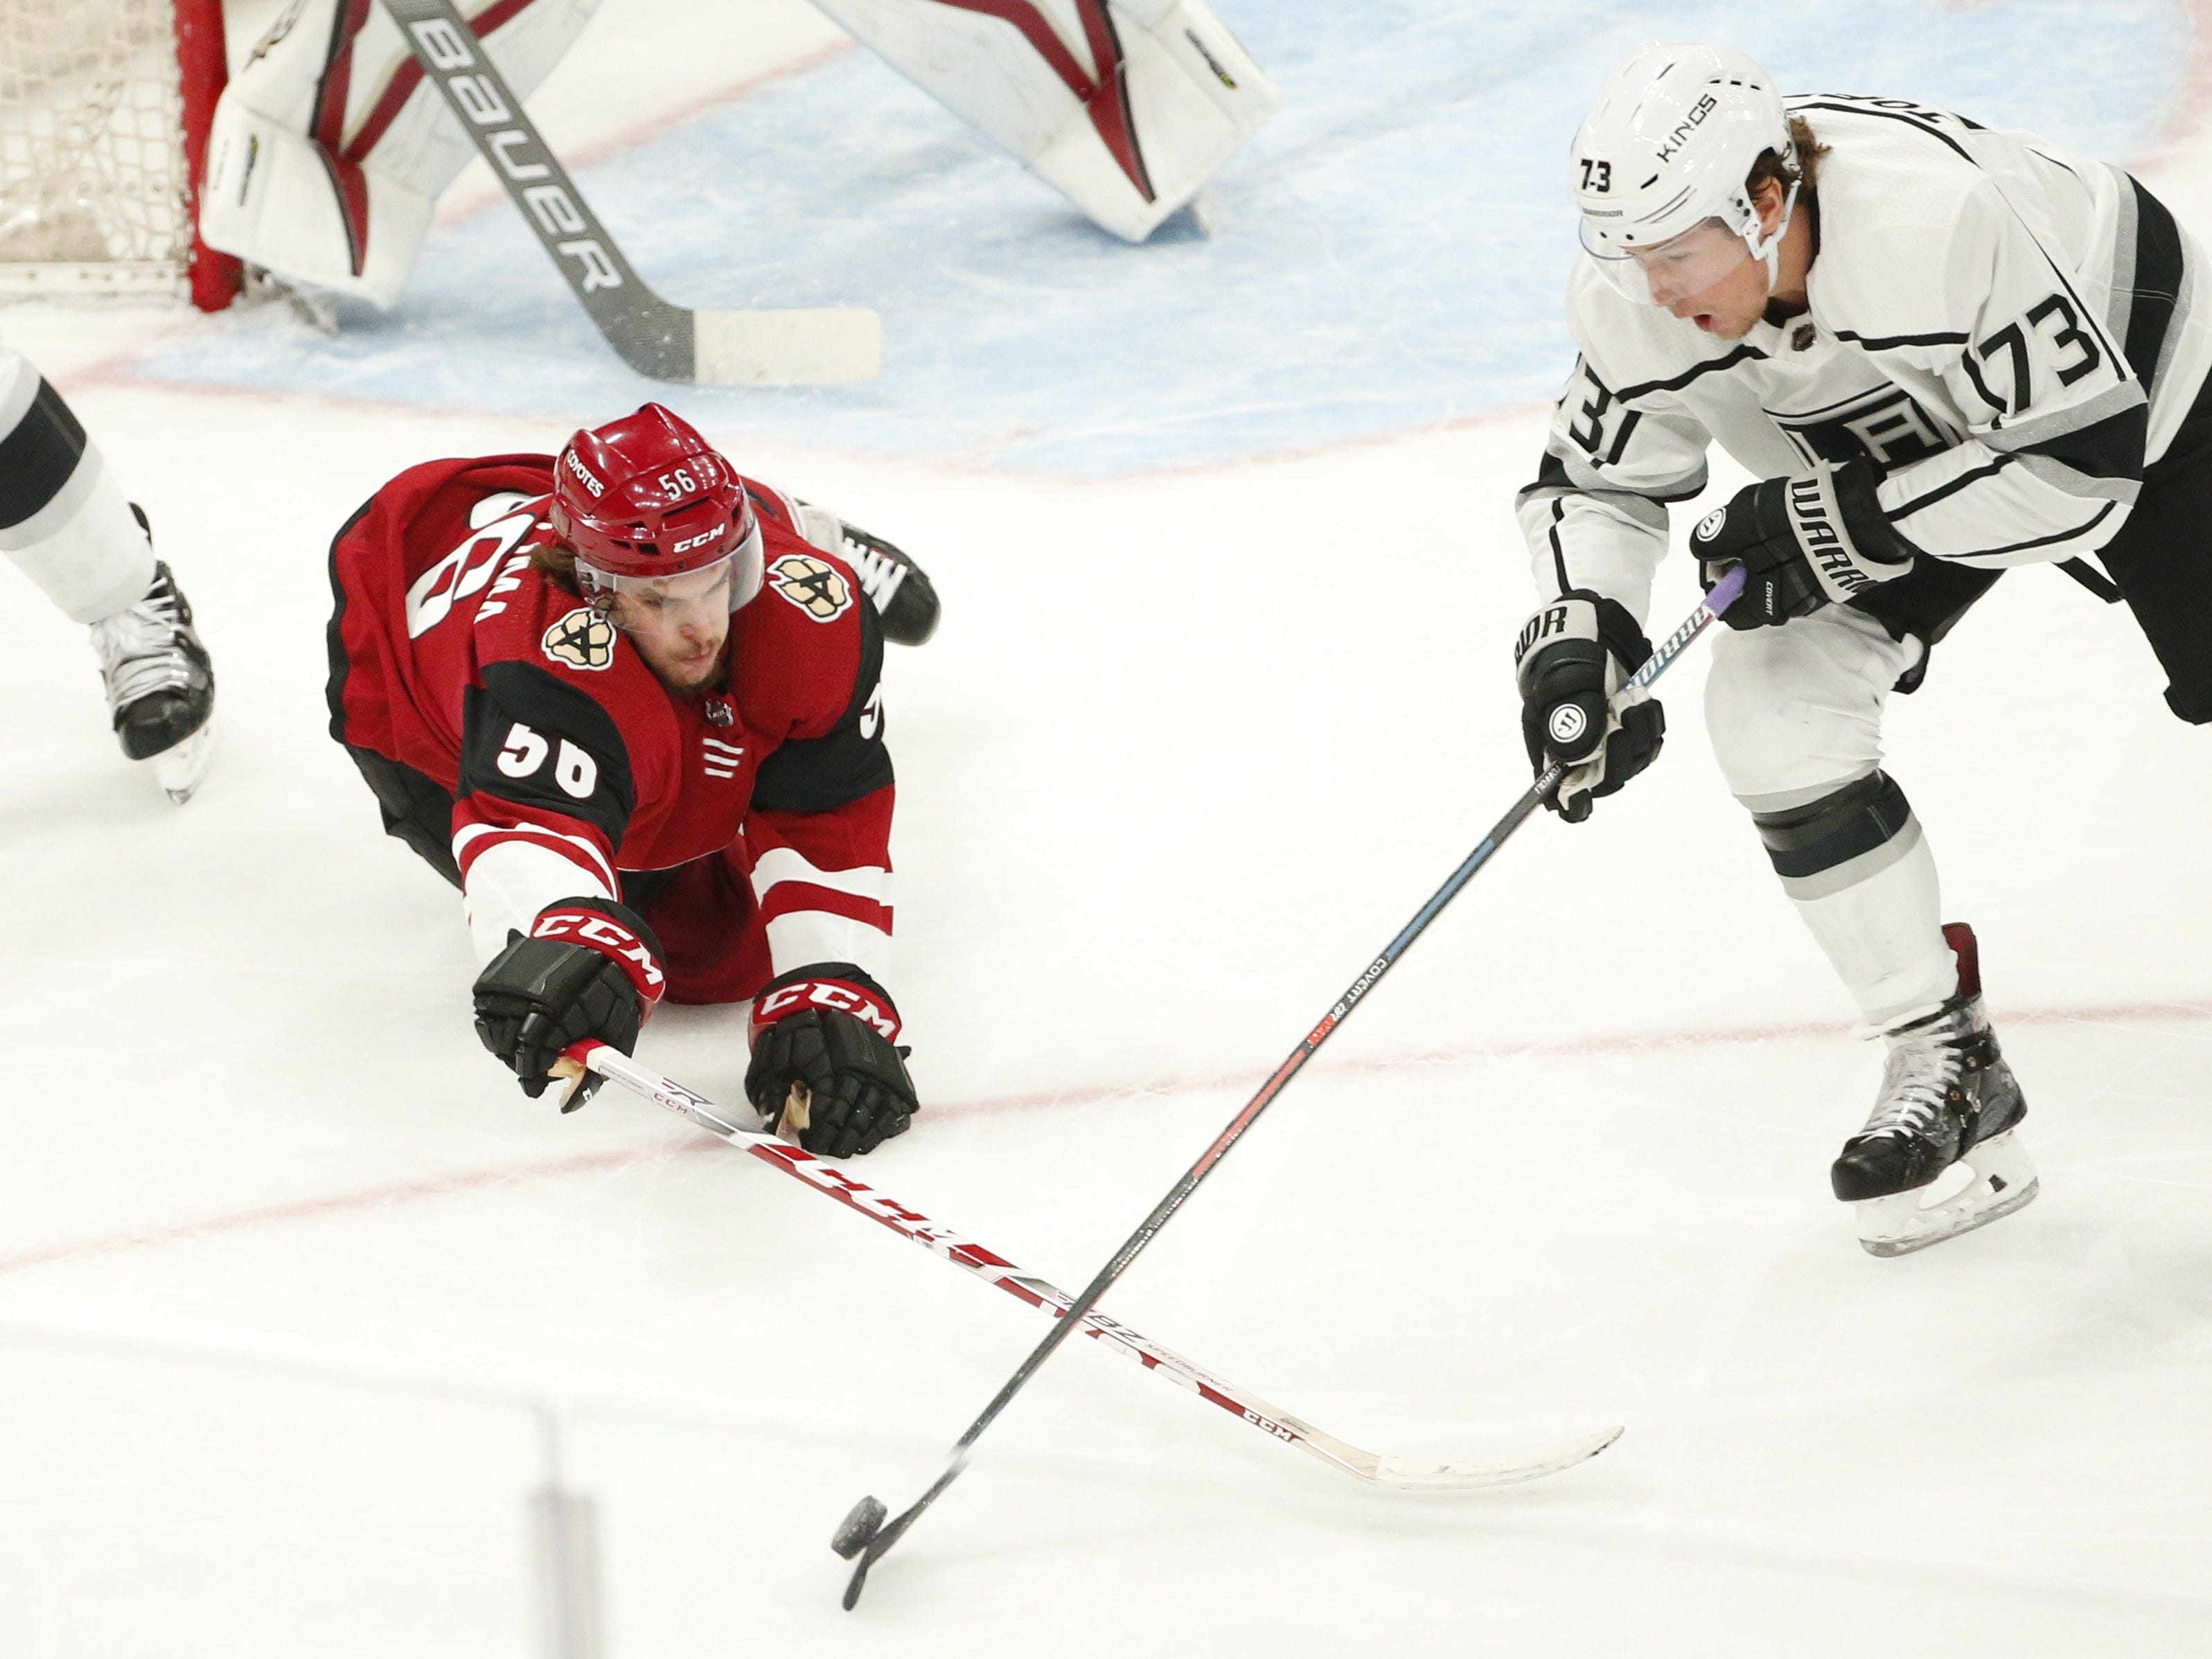 Arizona Coyotes left wing Kevin Klima swipes at the puck Los Angeles Kings right wing Tyler Toffoli (73) in the first period during pre-season NHL action at Gila River Arena in Glendale, Ariz. September 18, 2018.